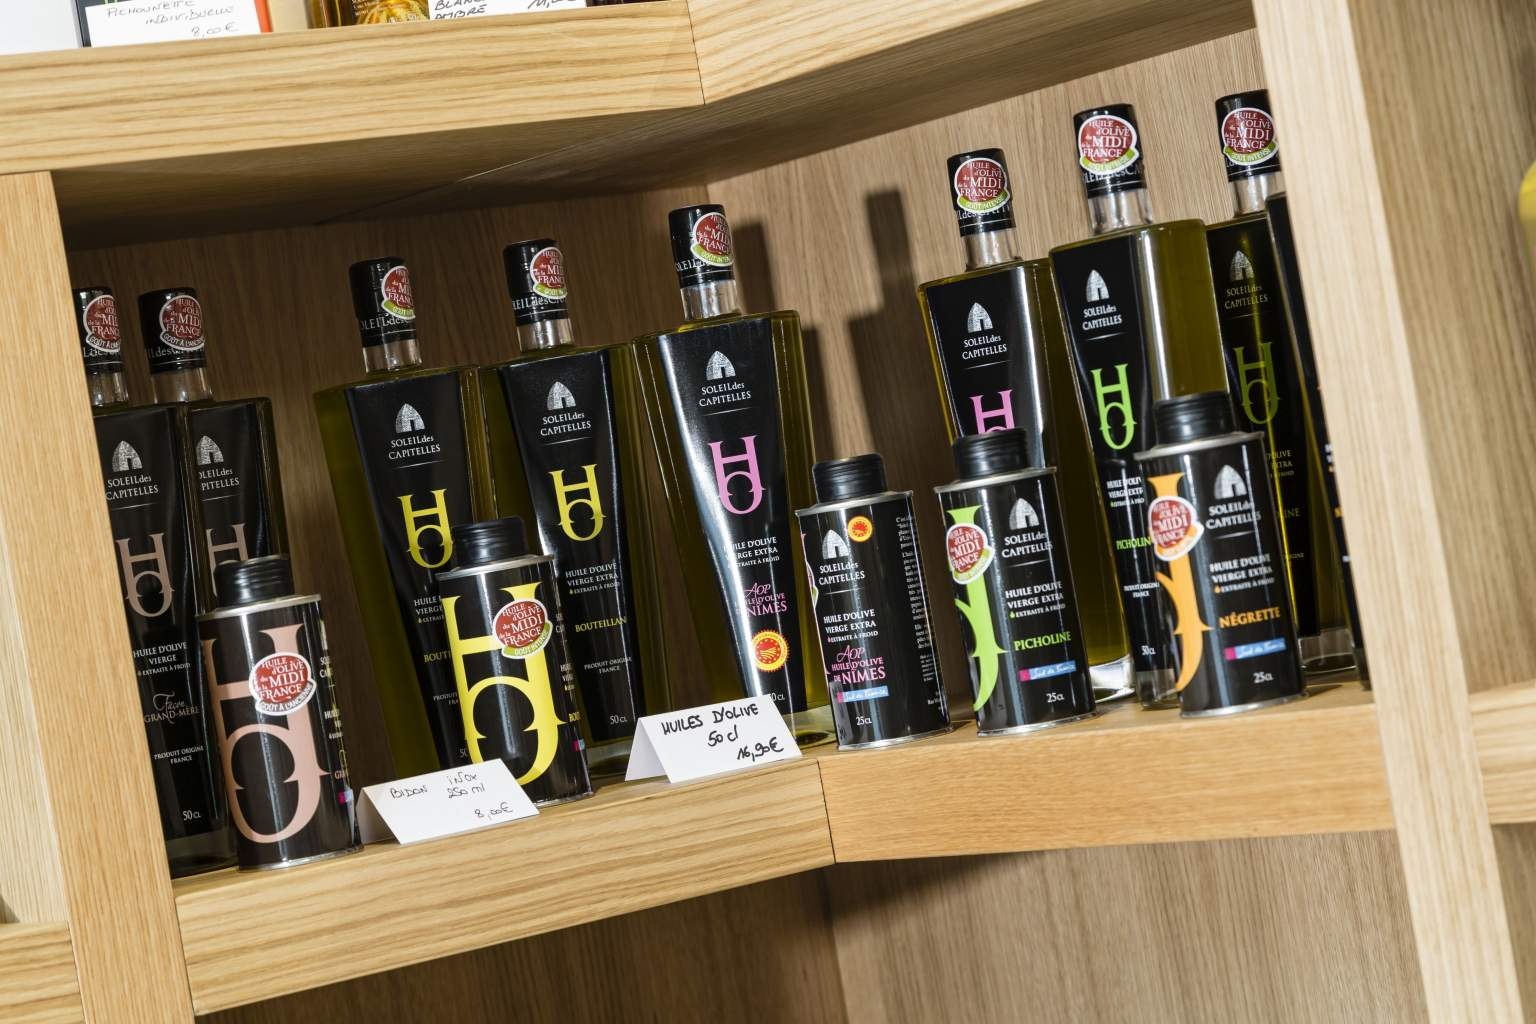 Jérôme NutileShop's at Nimes in Gard Local Products